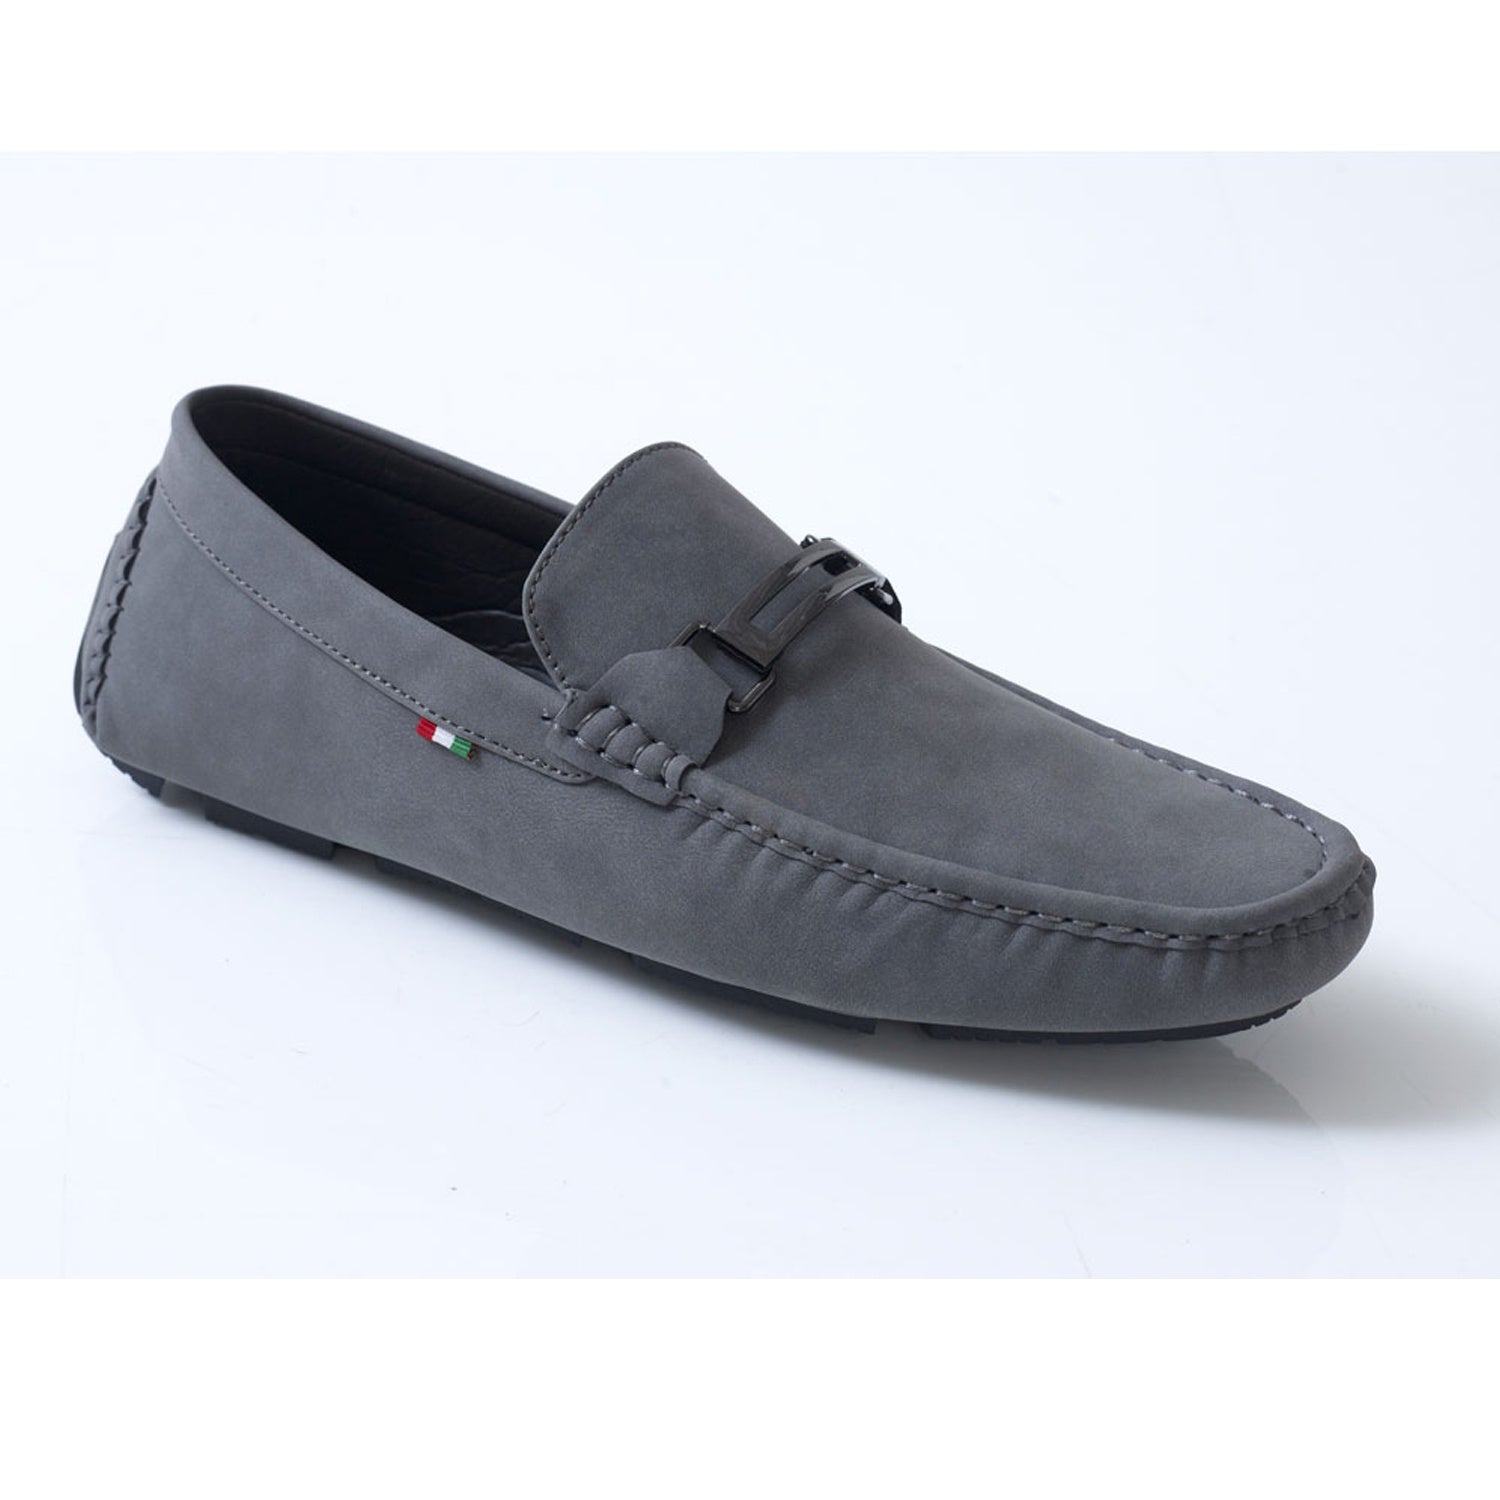 D555 Deck Shoe - KS24115 - Oakland - Grey 1